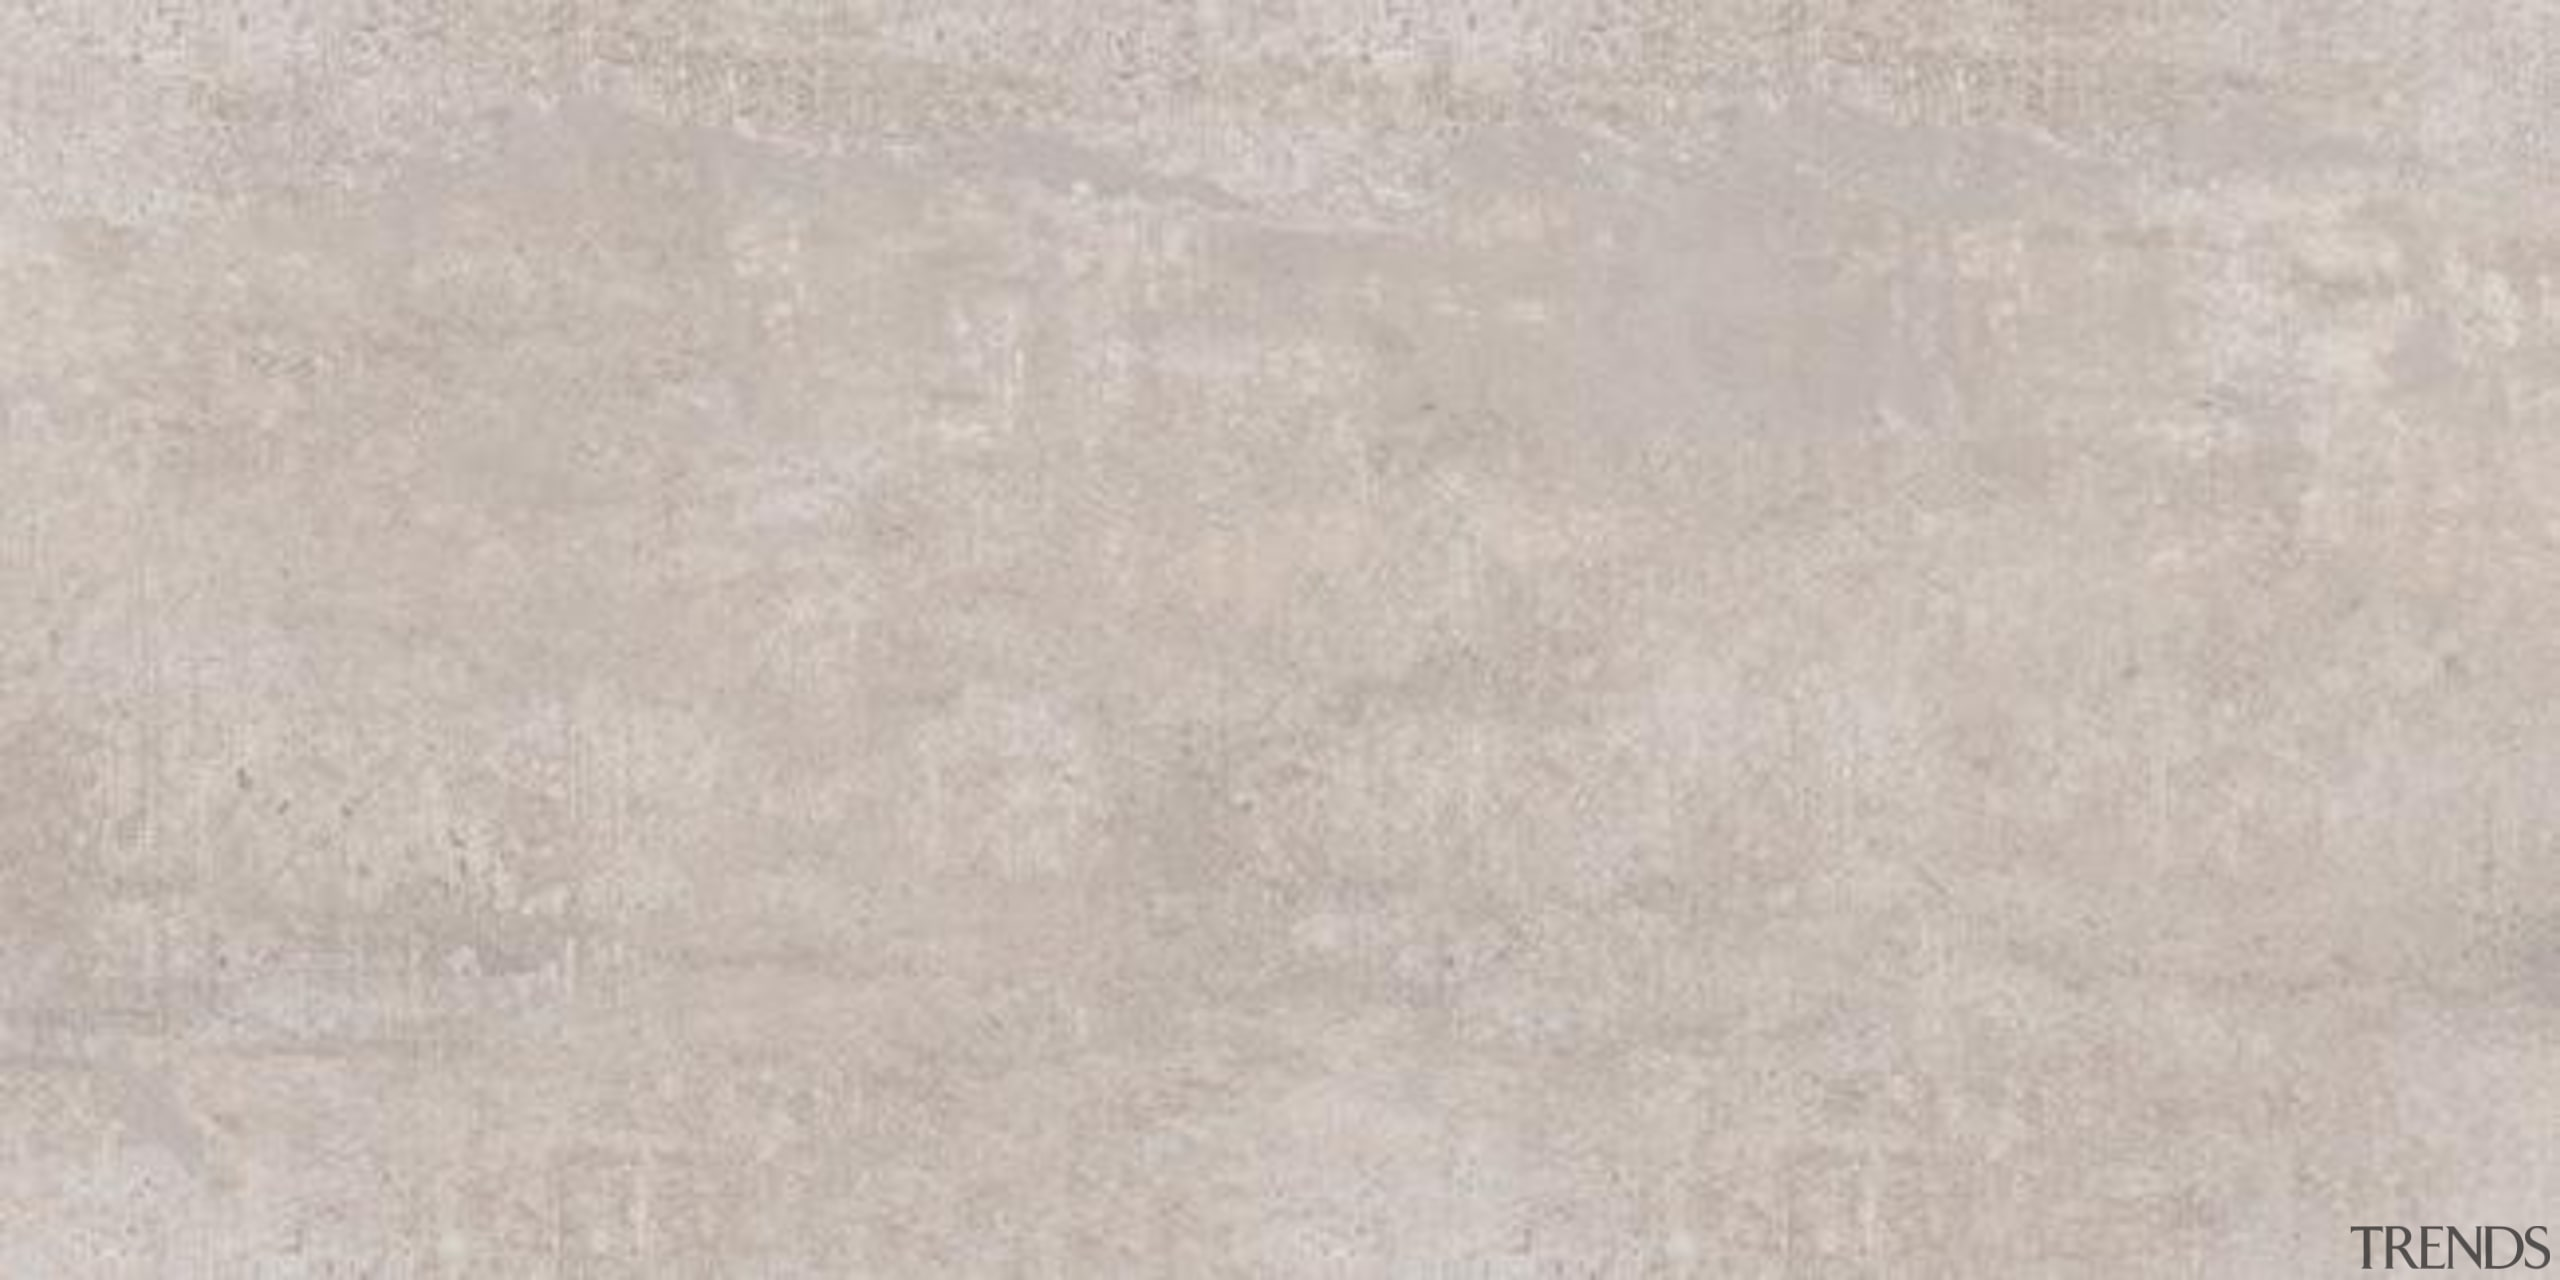 600x1200mm porcelain tiles suitable for interior floor and texture, gray